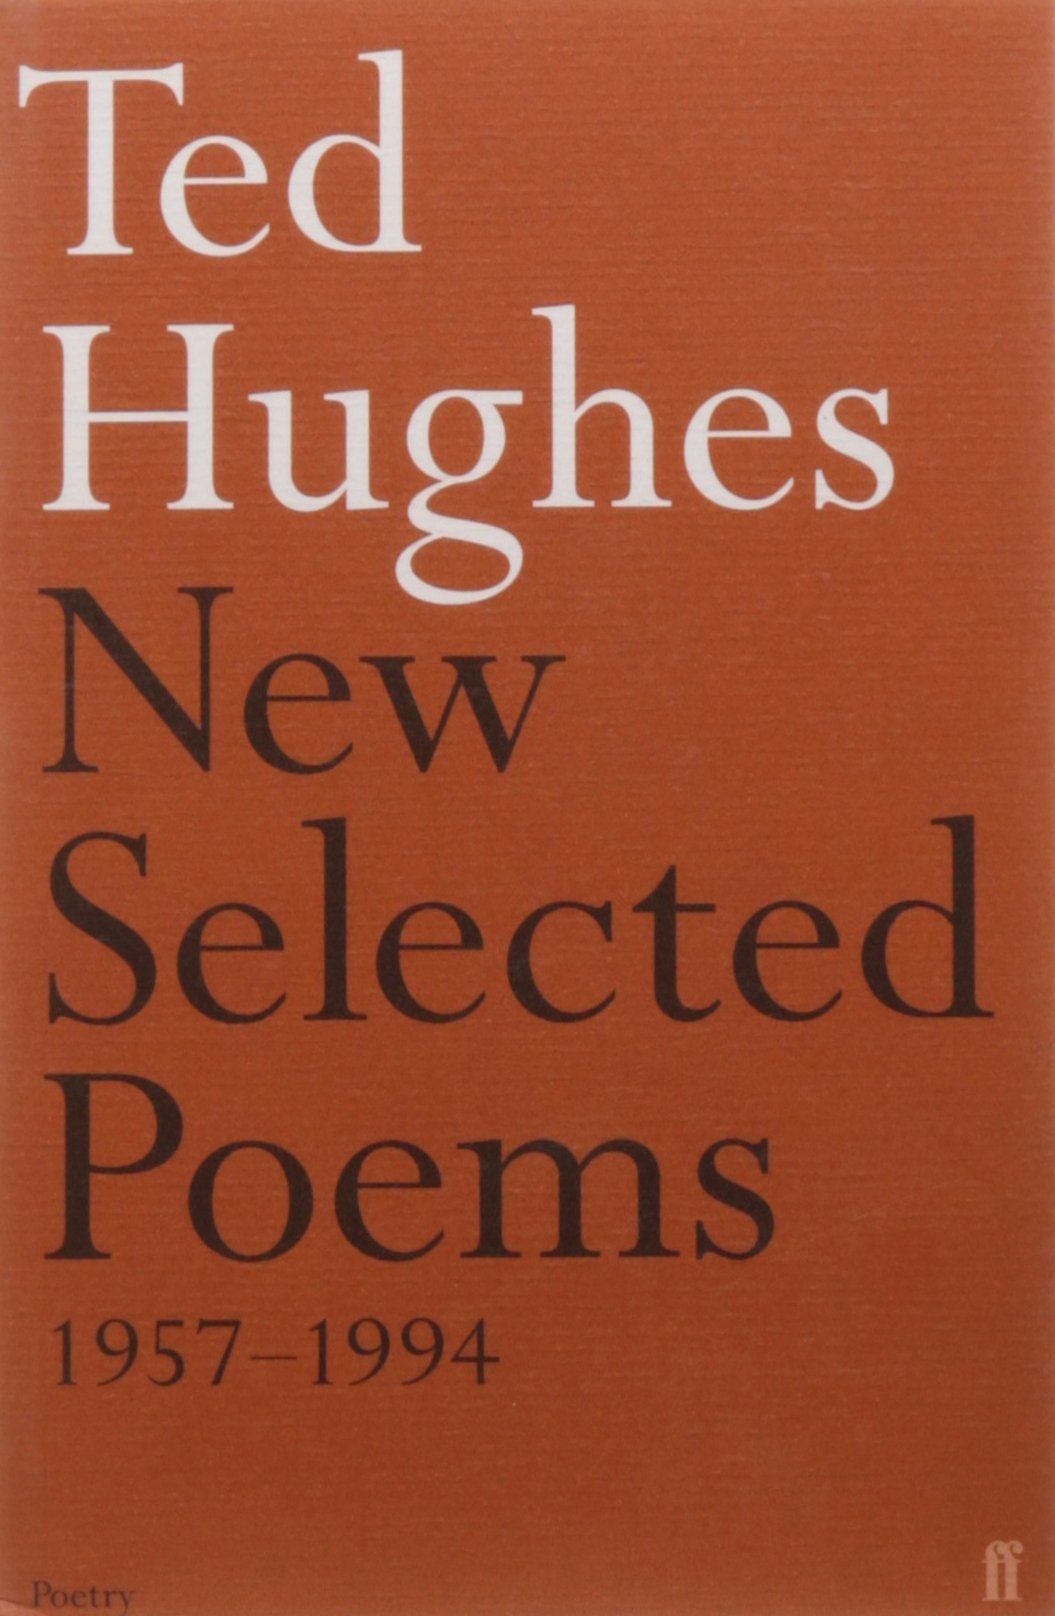 Image result for New Selected Poems ted hughes